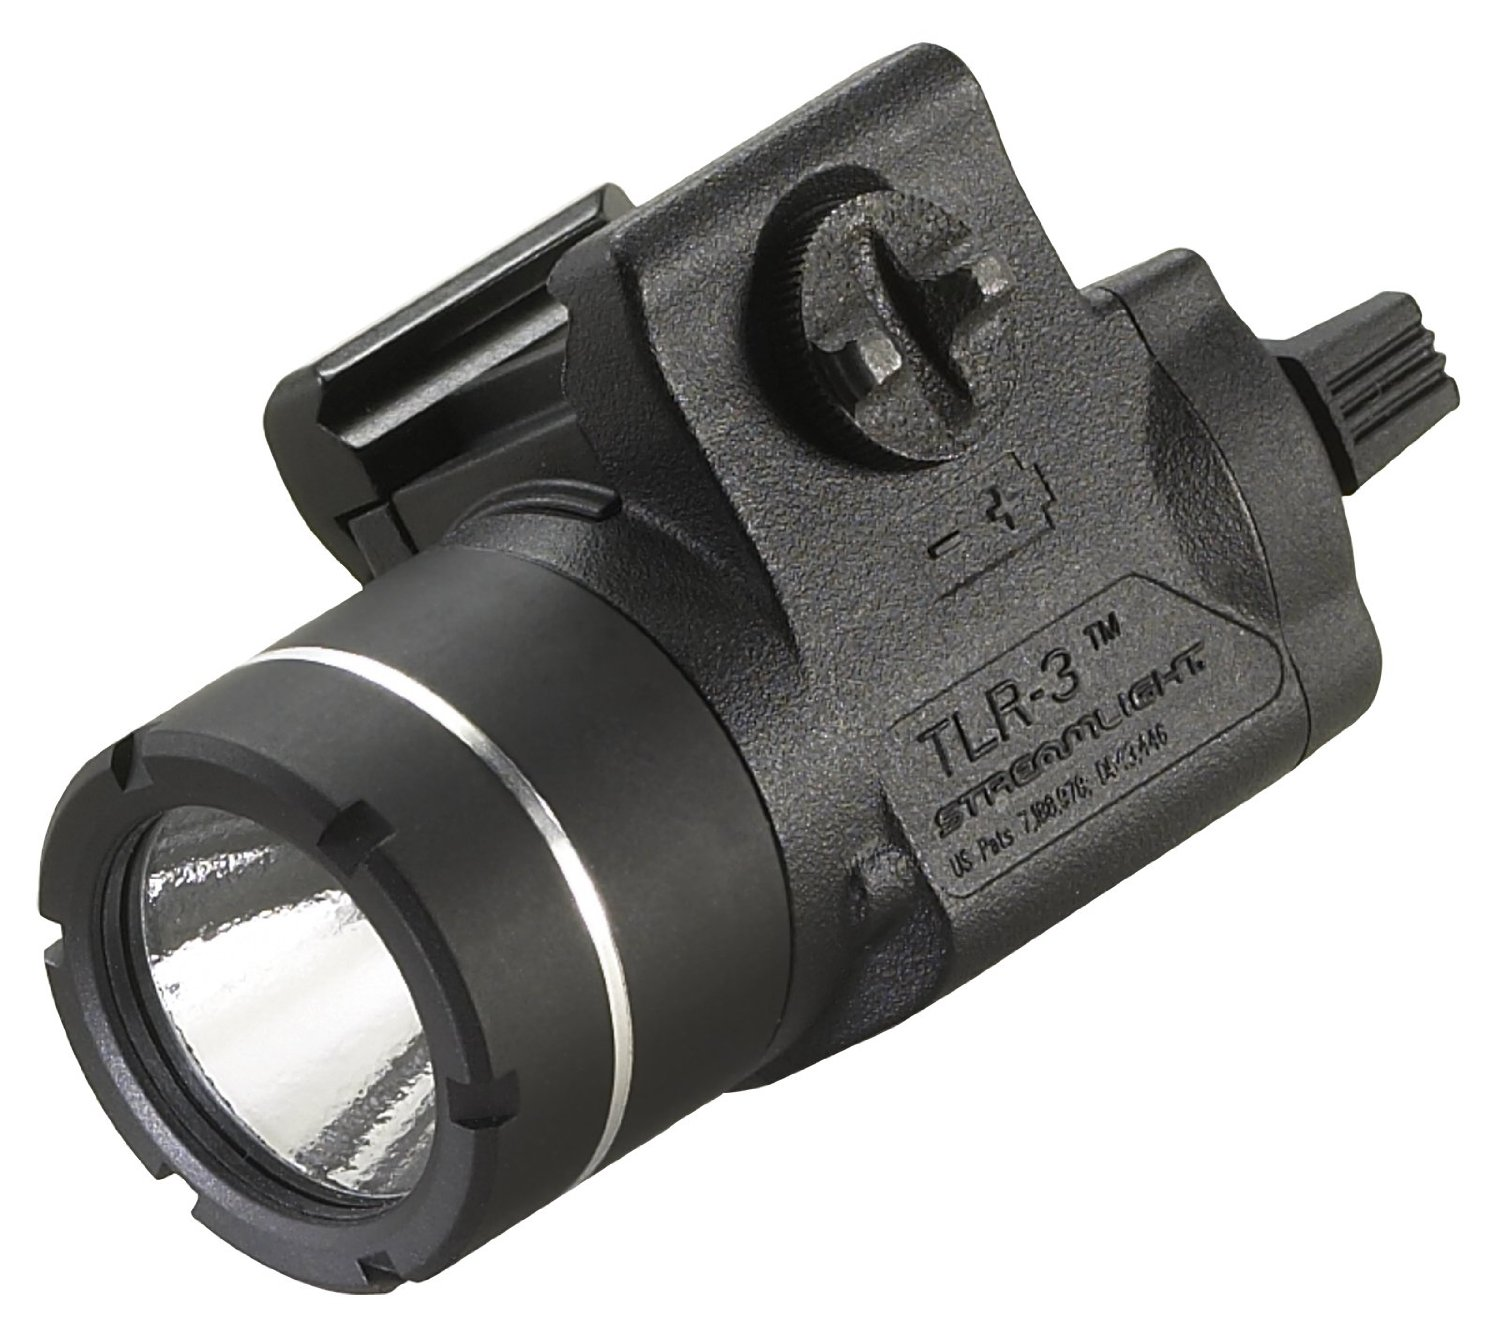 Streamlight TLR-3 Functionality & Durability